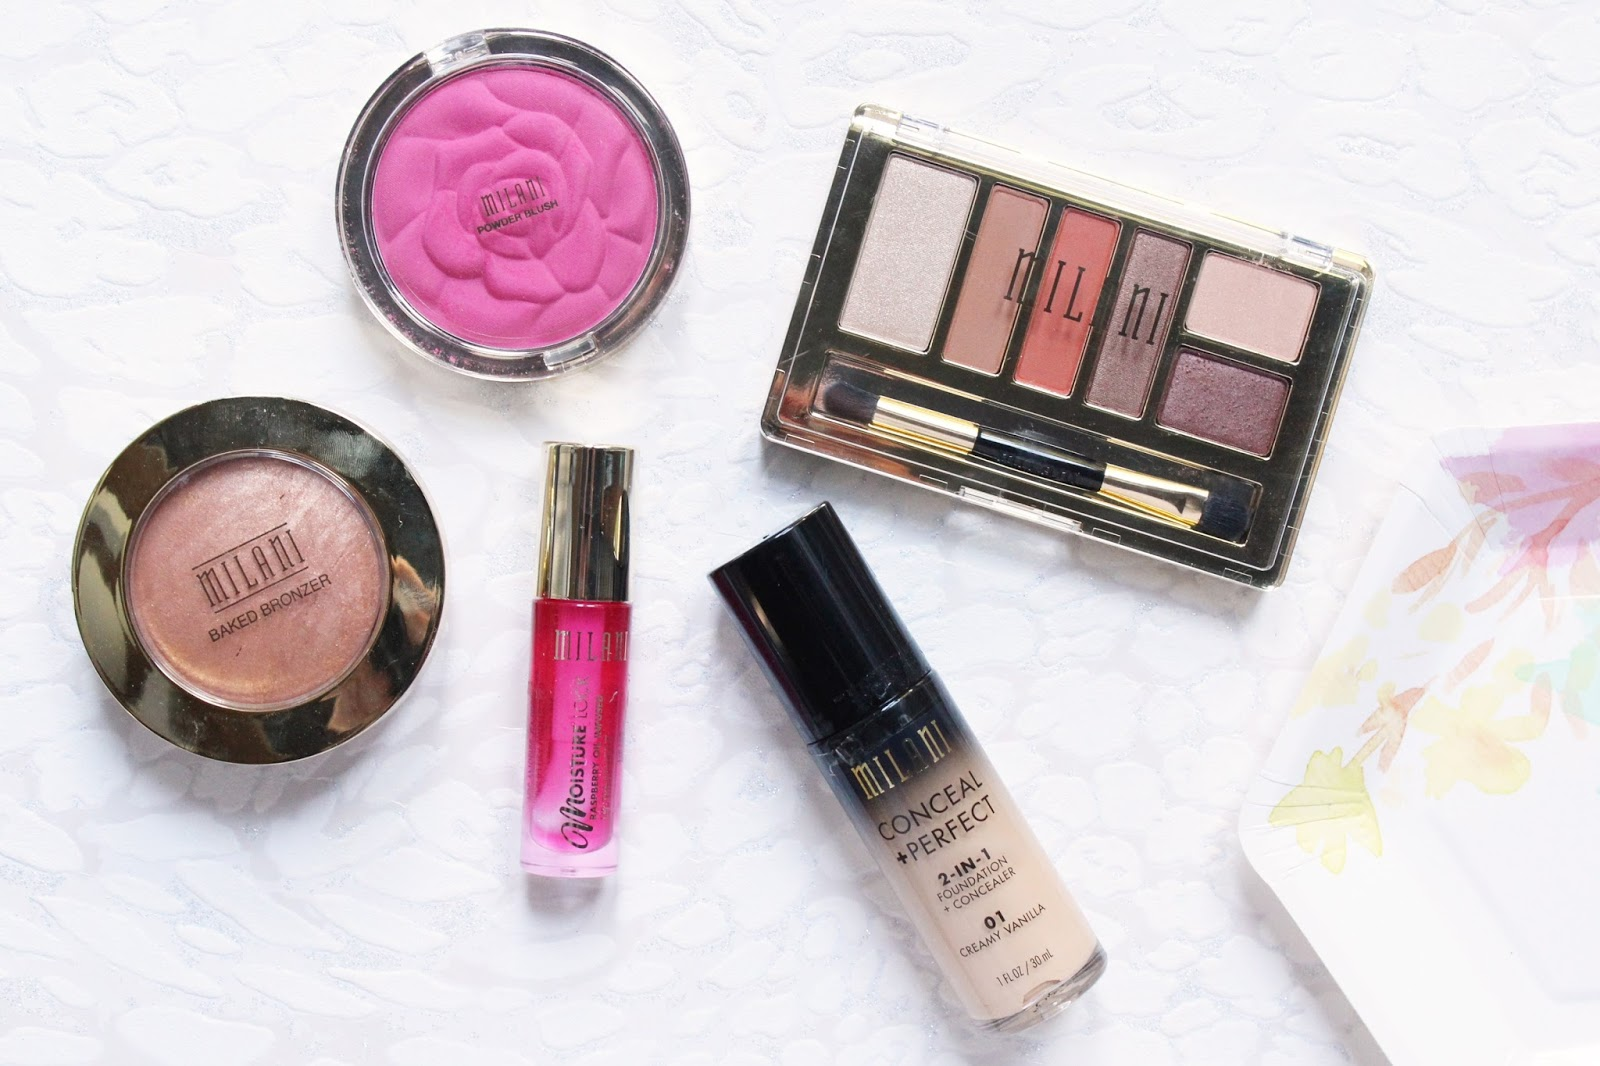 Milani Makeup at Beauty Base